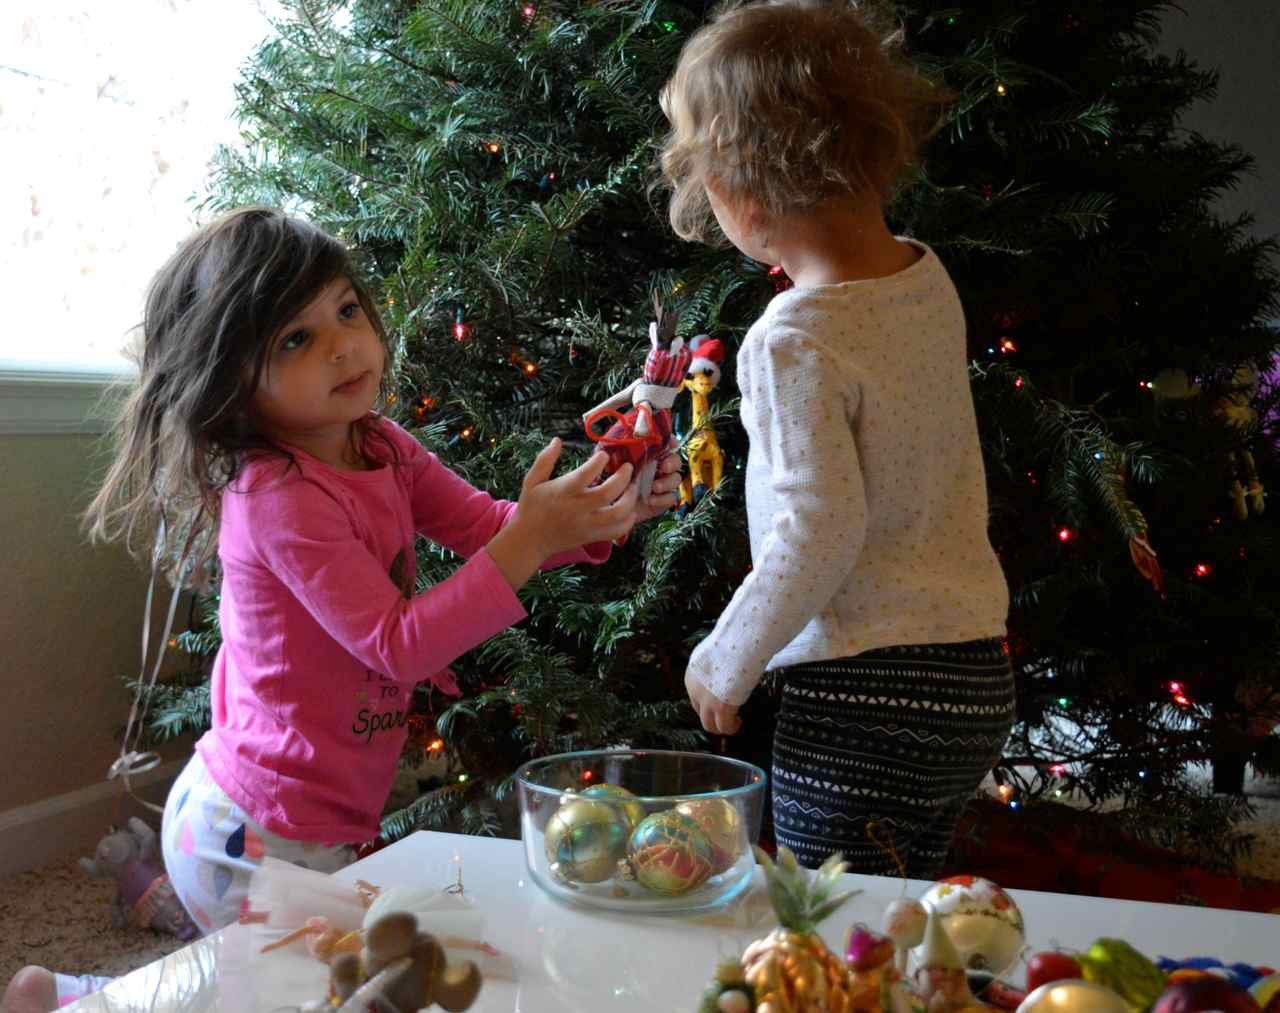 Christmas-decorating-with-toddlers-20.jpg